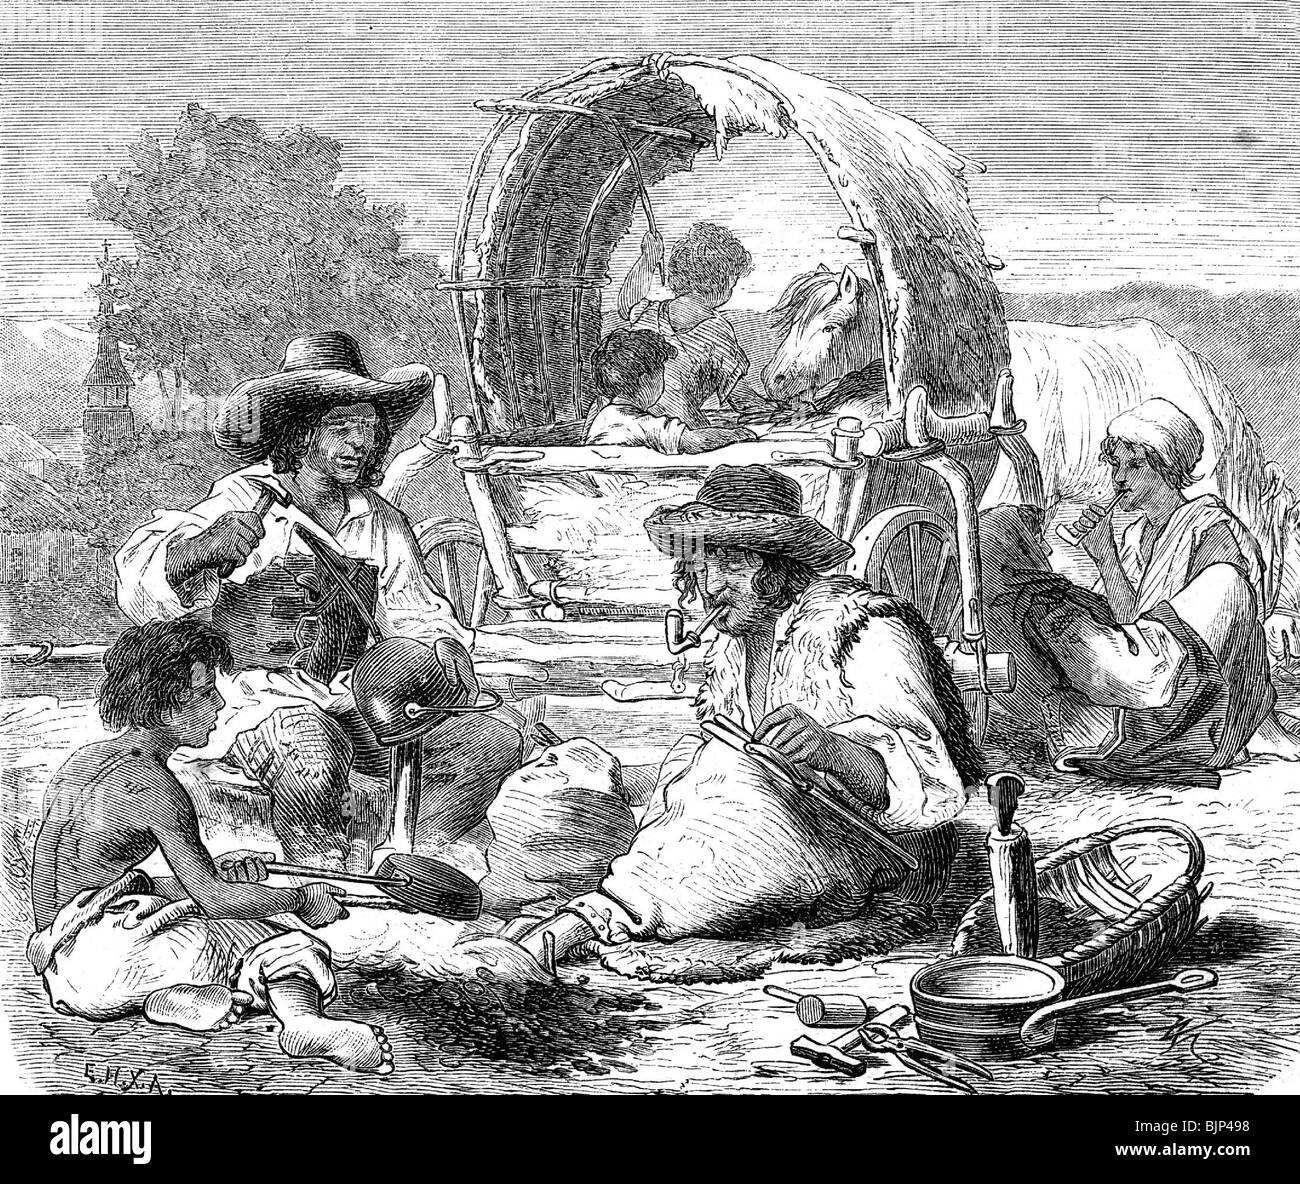 people, gypsies, tinkers at work, repairing a kettle, wood engraving, 19th century, after drawing by Vinzenz Melka - Stock Image